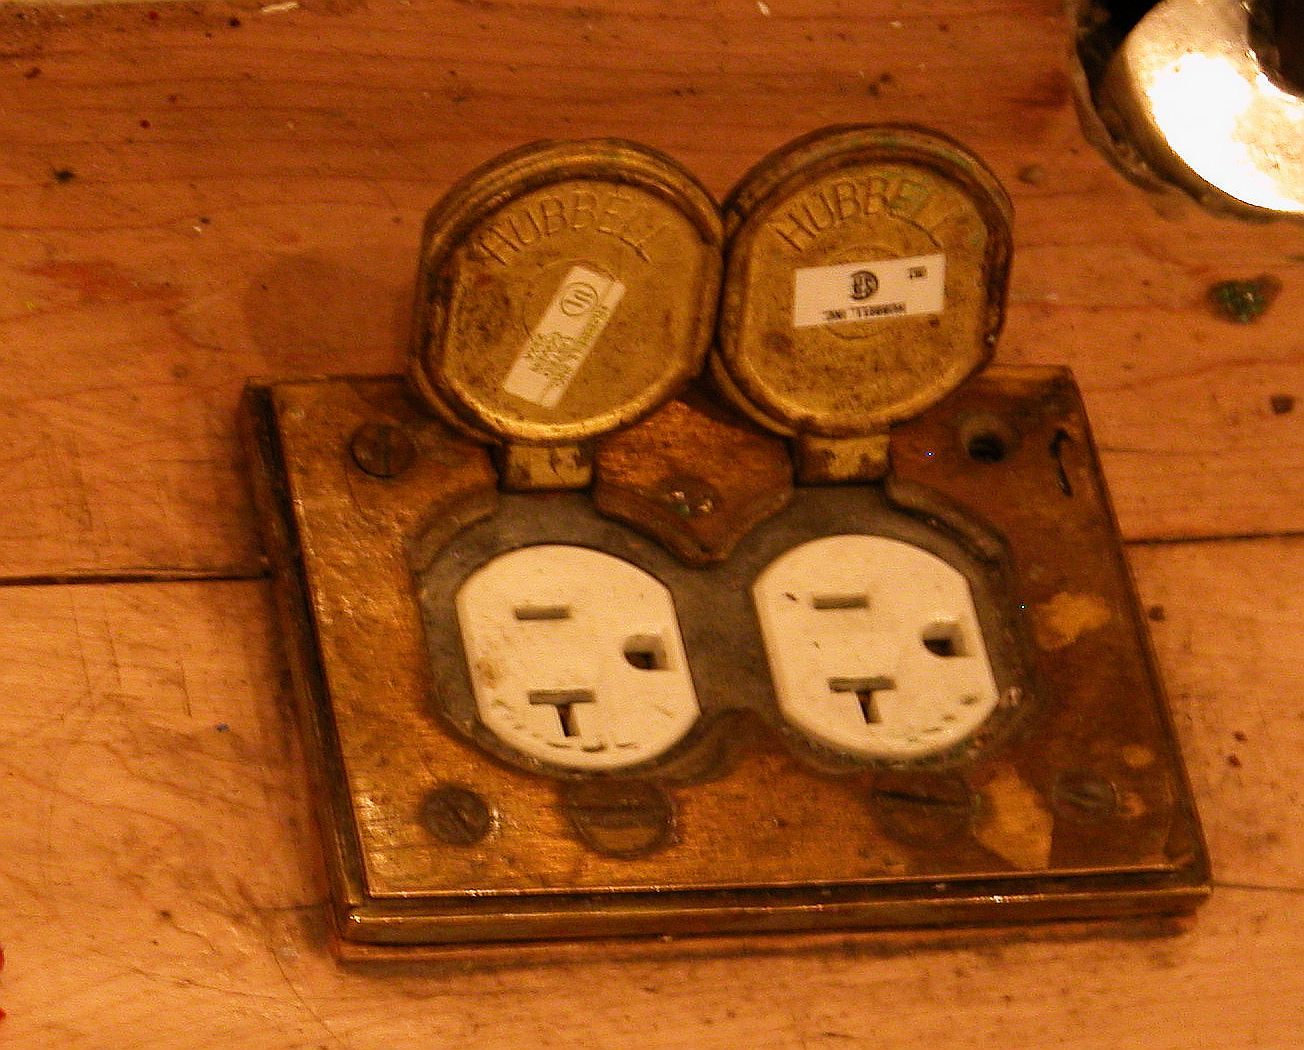 a Firehouse floor socket, only one in the whole place that was empty!